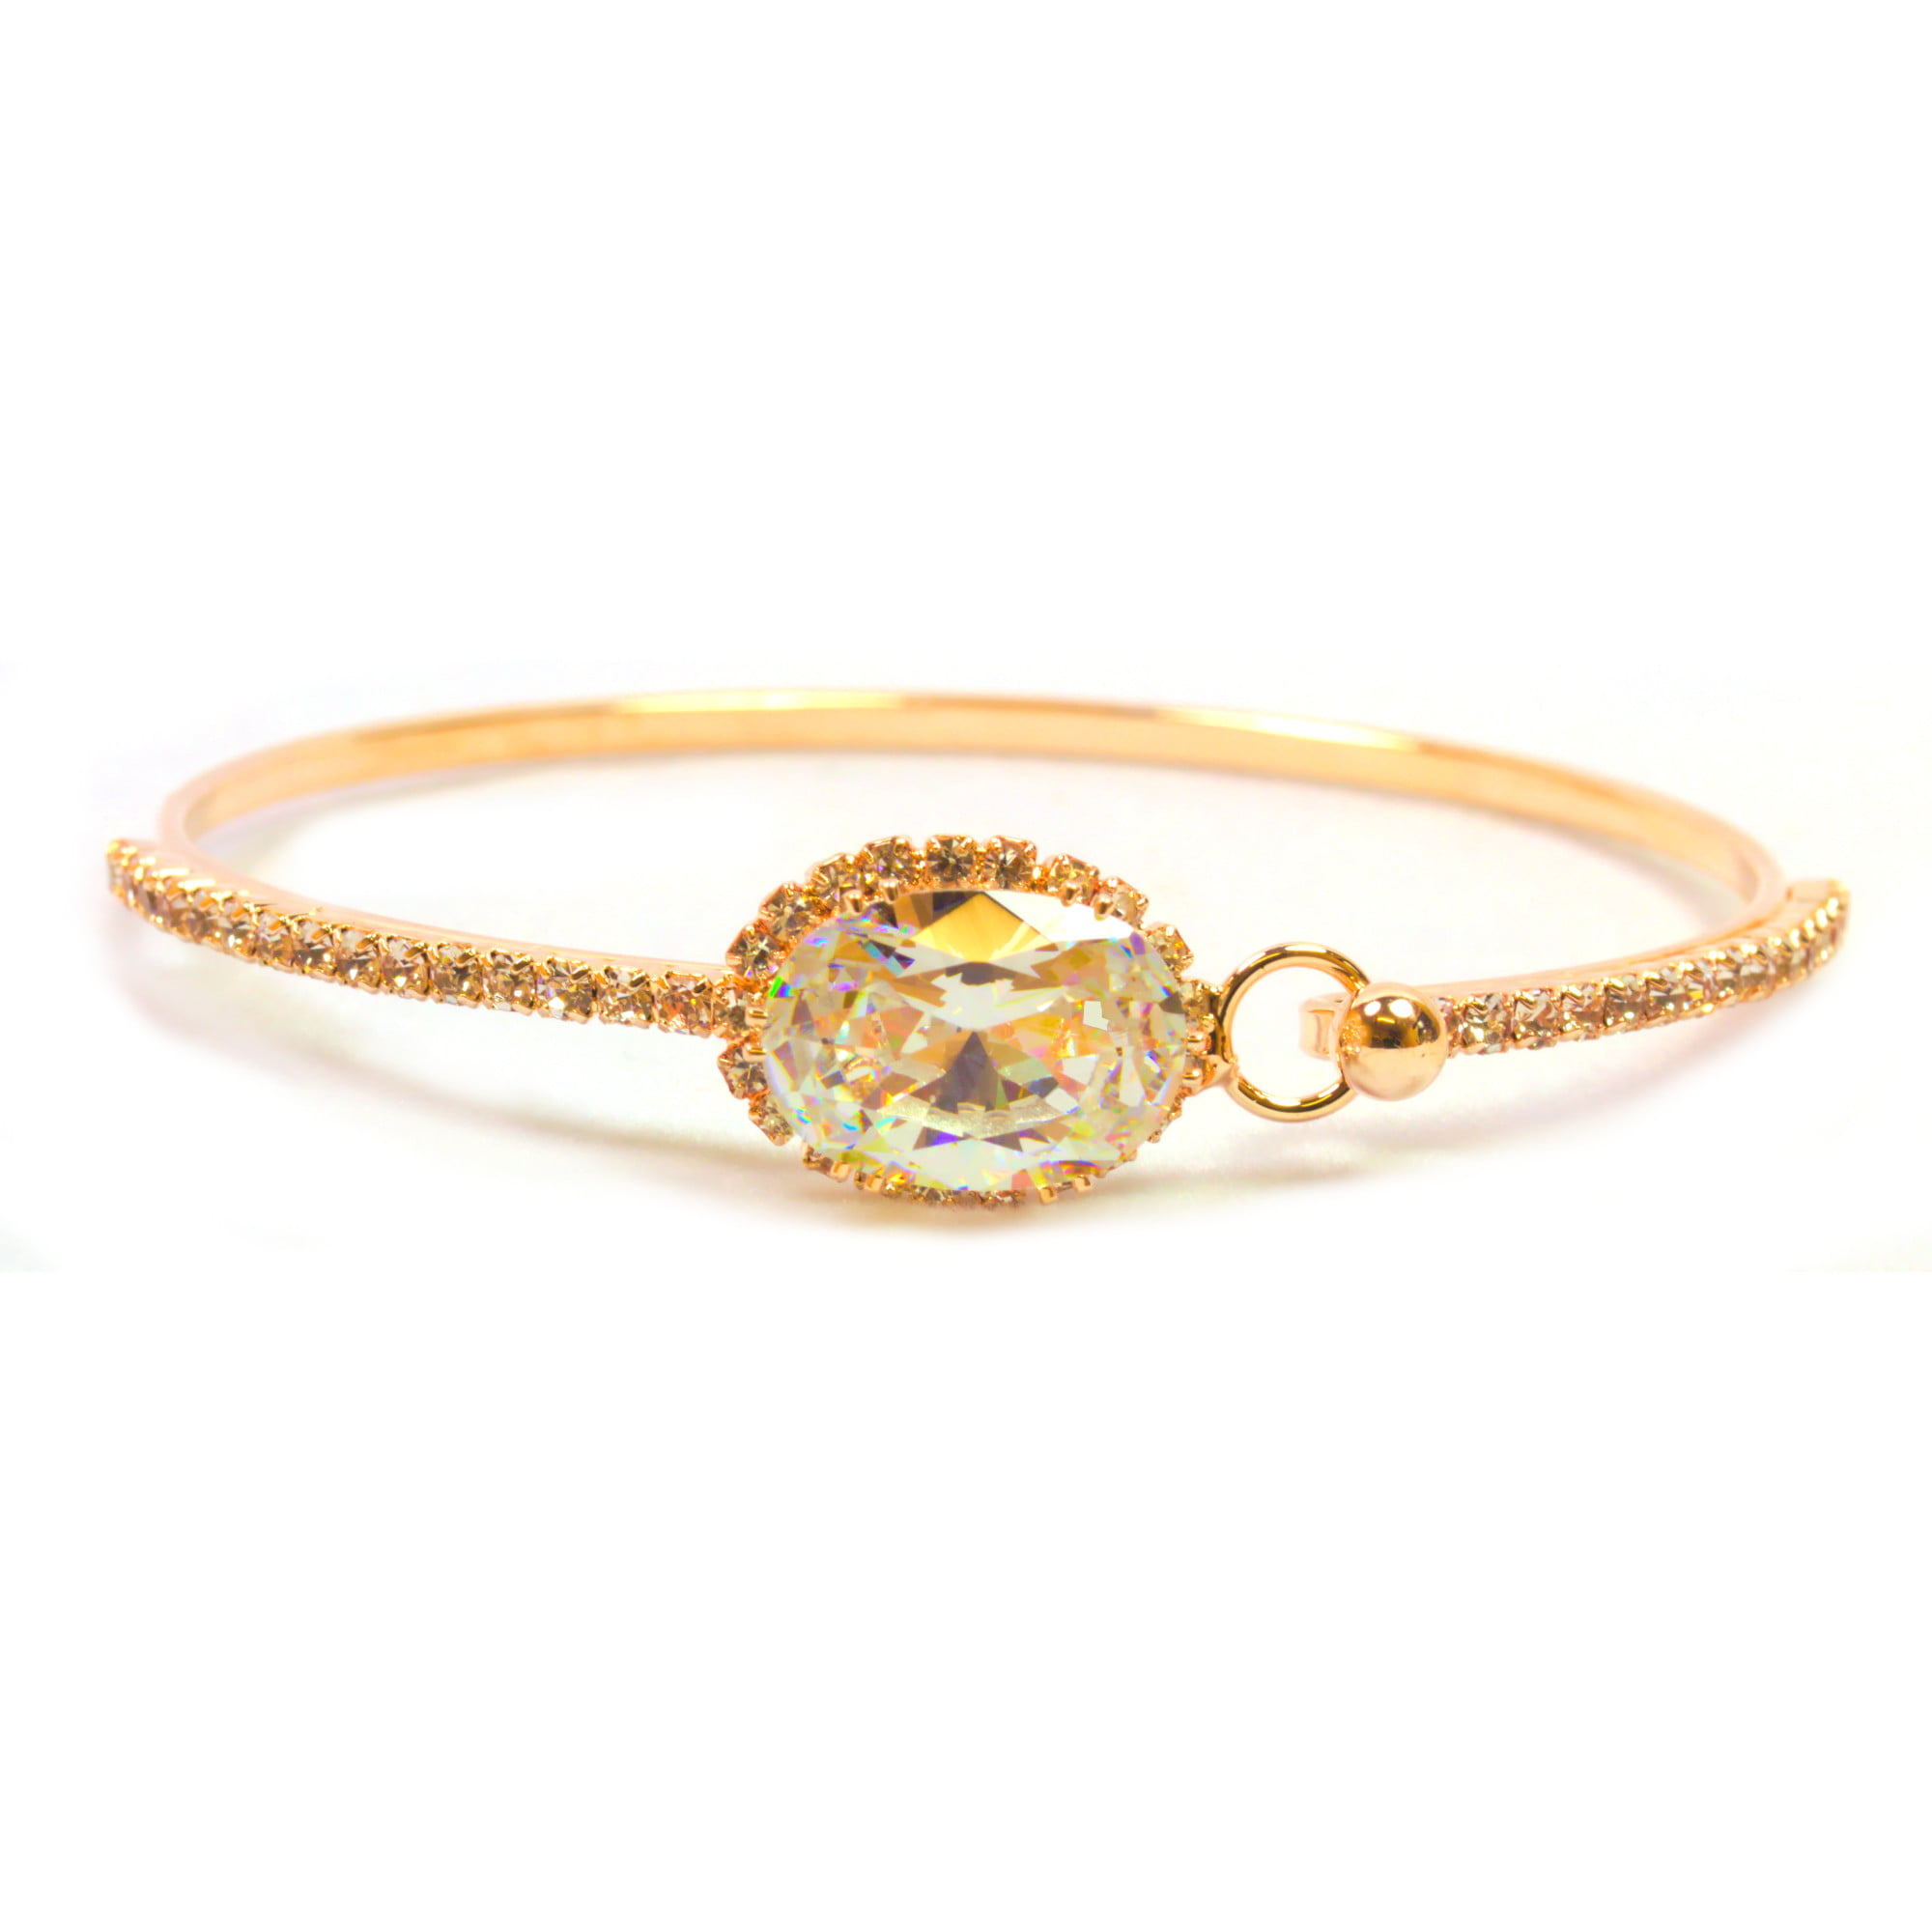 Rose gold plated bangle with large crystal stone.